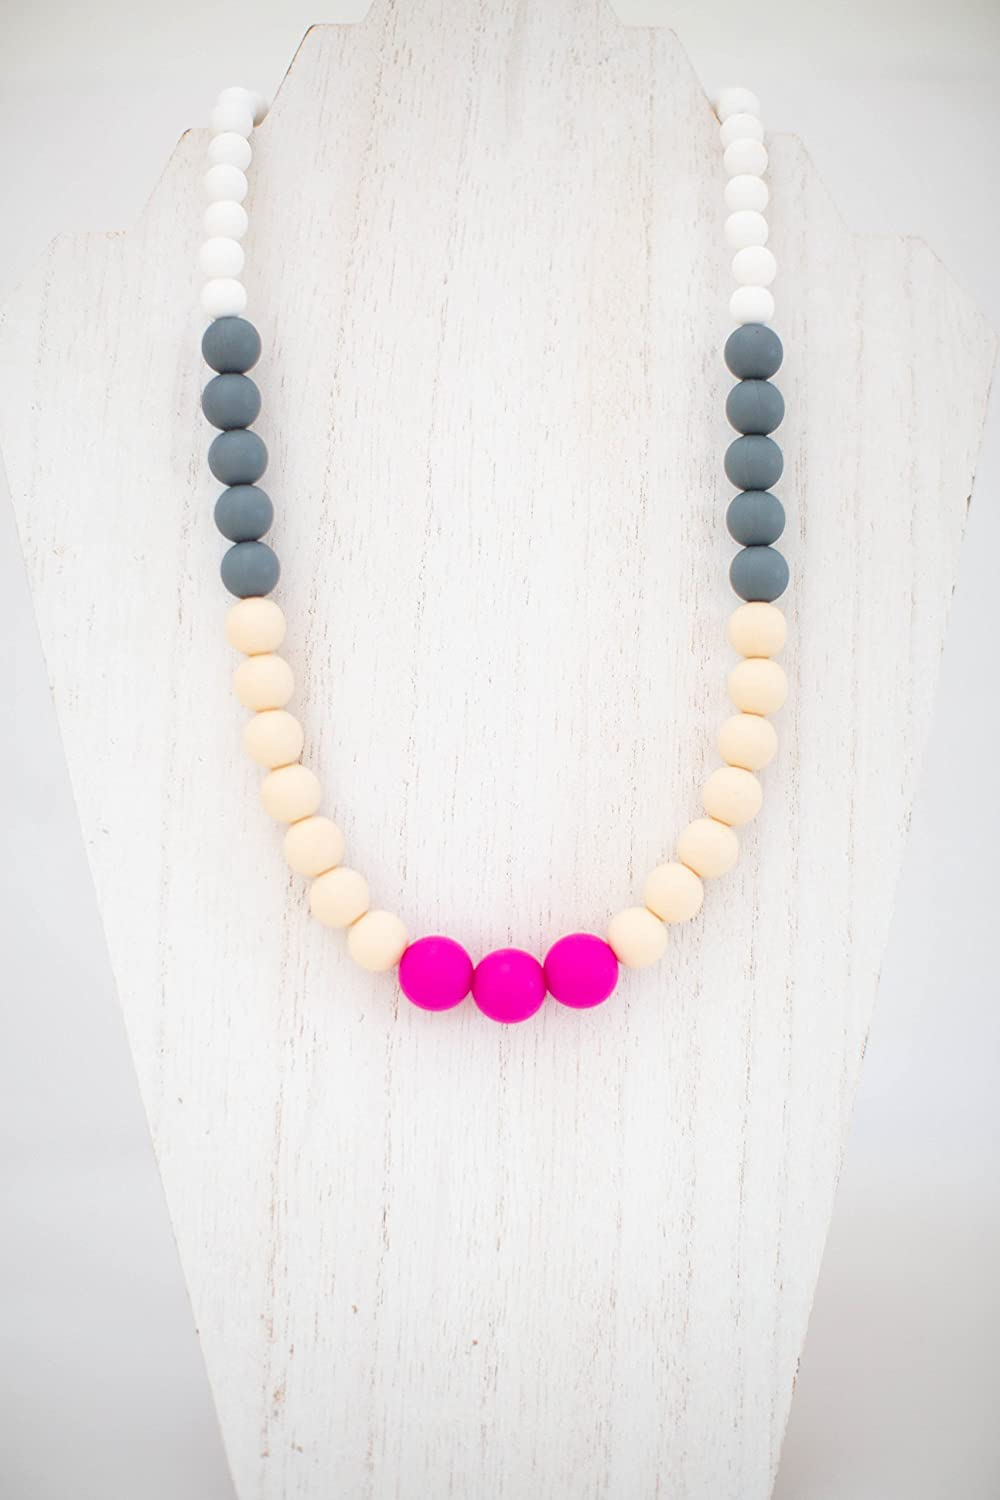 Chewby Chewelry Urban Rose Teething Necklace for Moms and bubs - Silicone chew Jewelry - Oral Sensory aid teether Necklace - Baby and mom